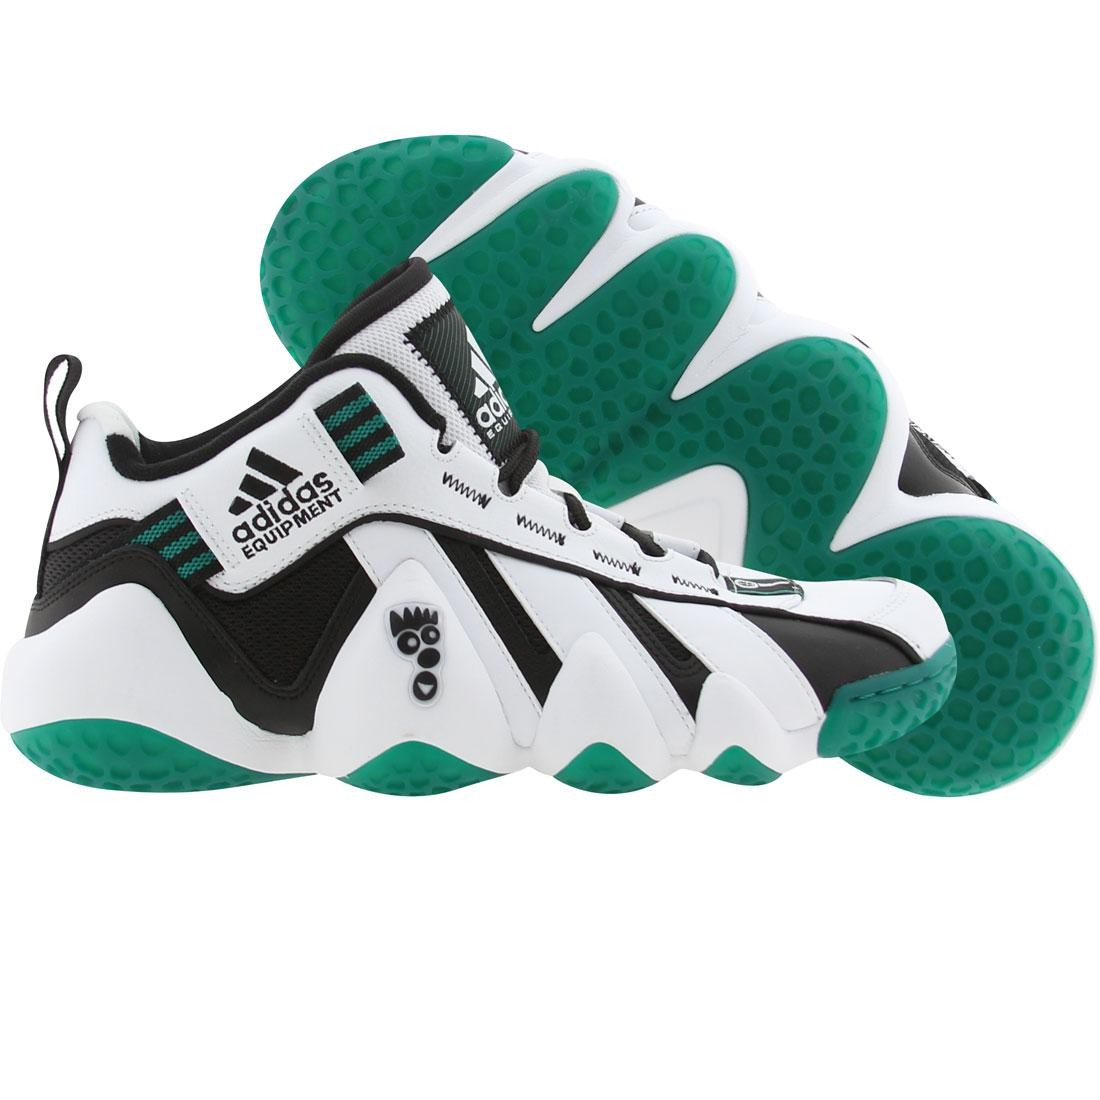 official photos 654c7 53884 Adidas Men EQT Key Trainer - Keyshawn Johnson (black / runninwhite / subgrn)